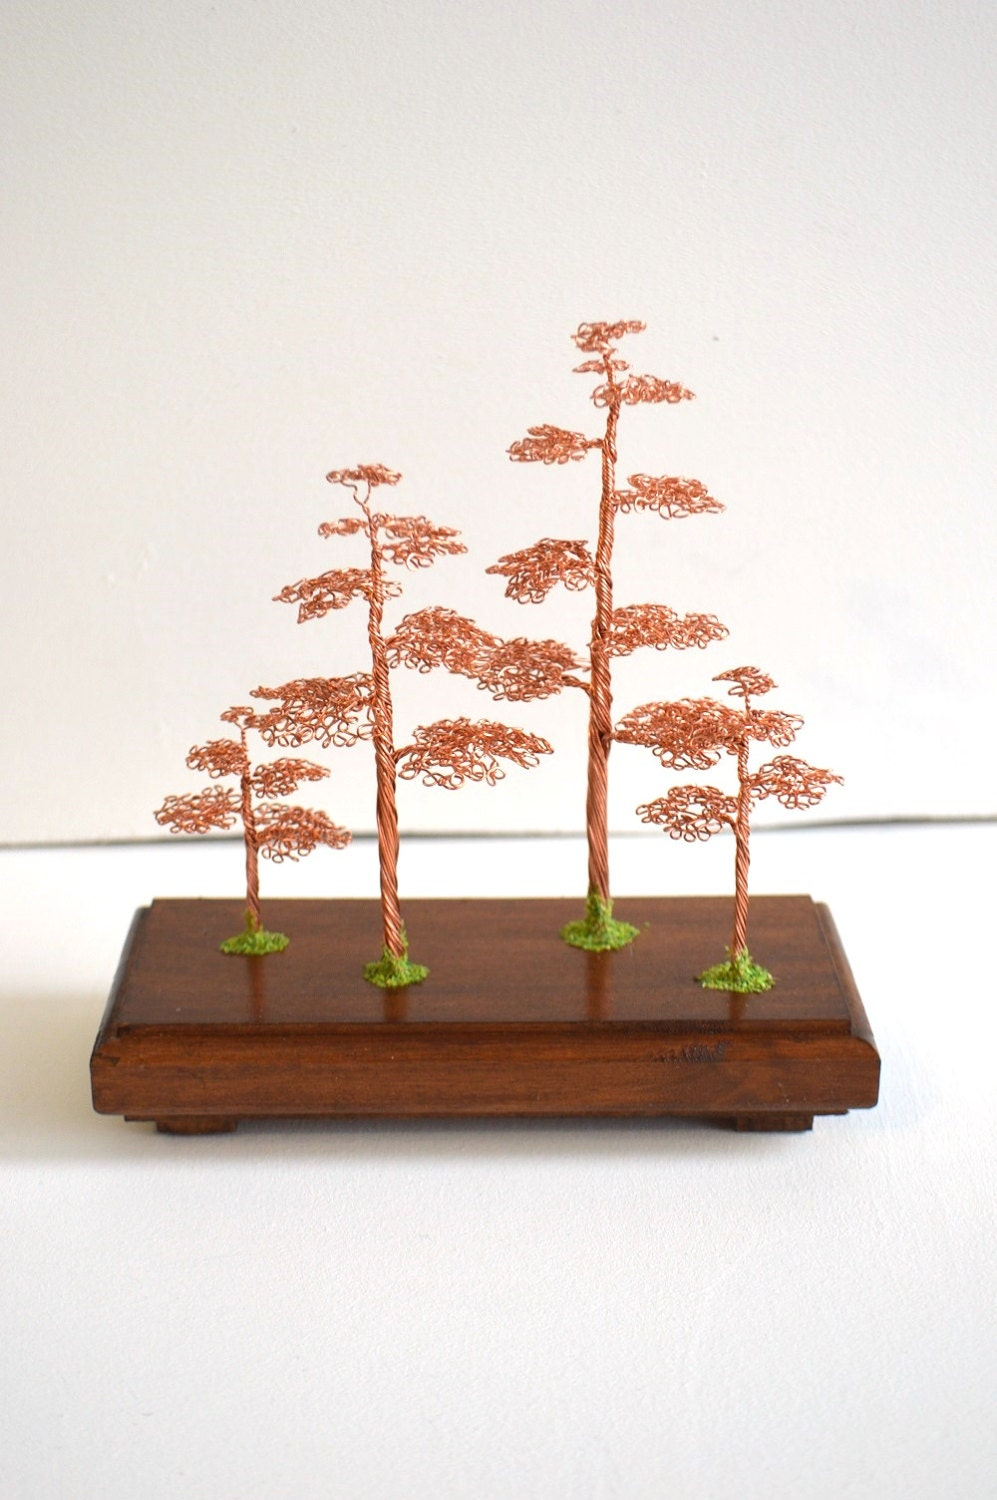 Copper Home Decor copper kitchen items stylethrive Tree Of Life Gift Idea Copper Art Tree Souvenir Gift For Men Minimal Home Decor Gifts